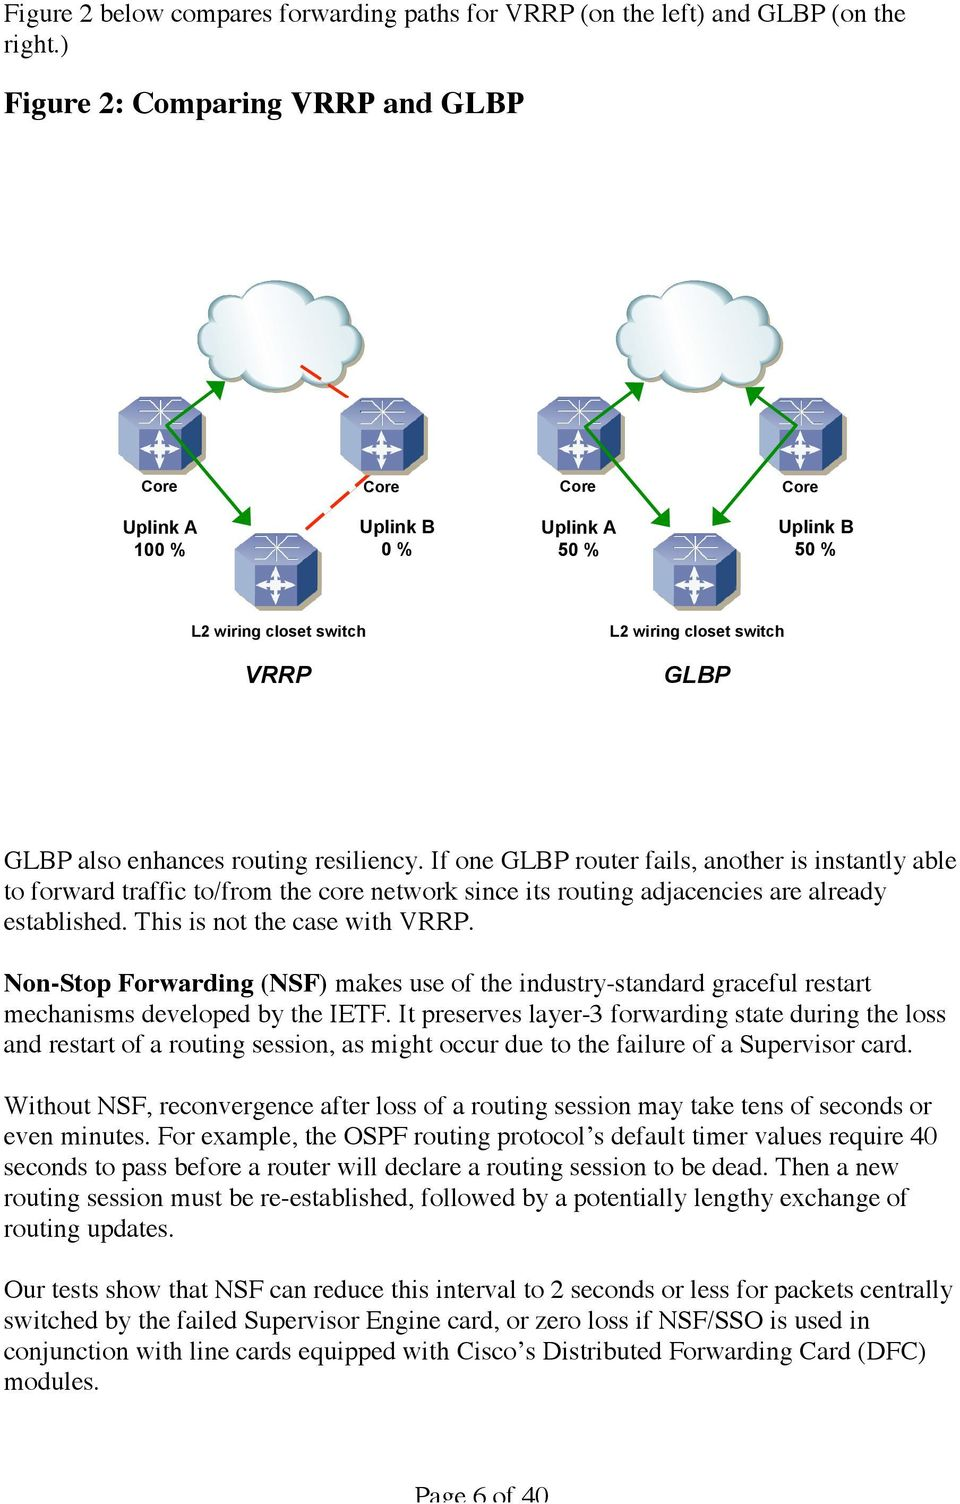 resiliency. If one GLBP router fails, another is instantly able to forward traffic to/from the core network since its routing adjacencies are already established. This is not the case with VRRP.